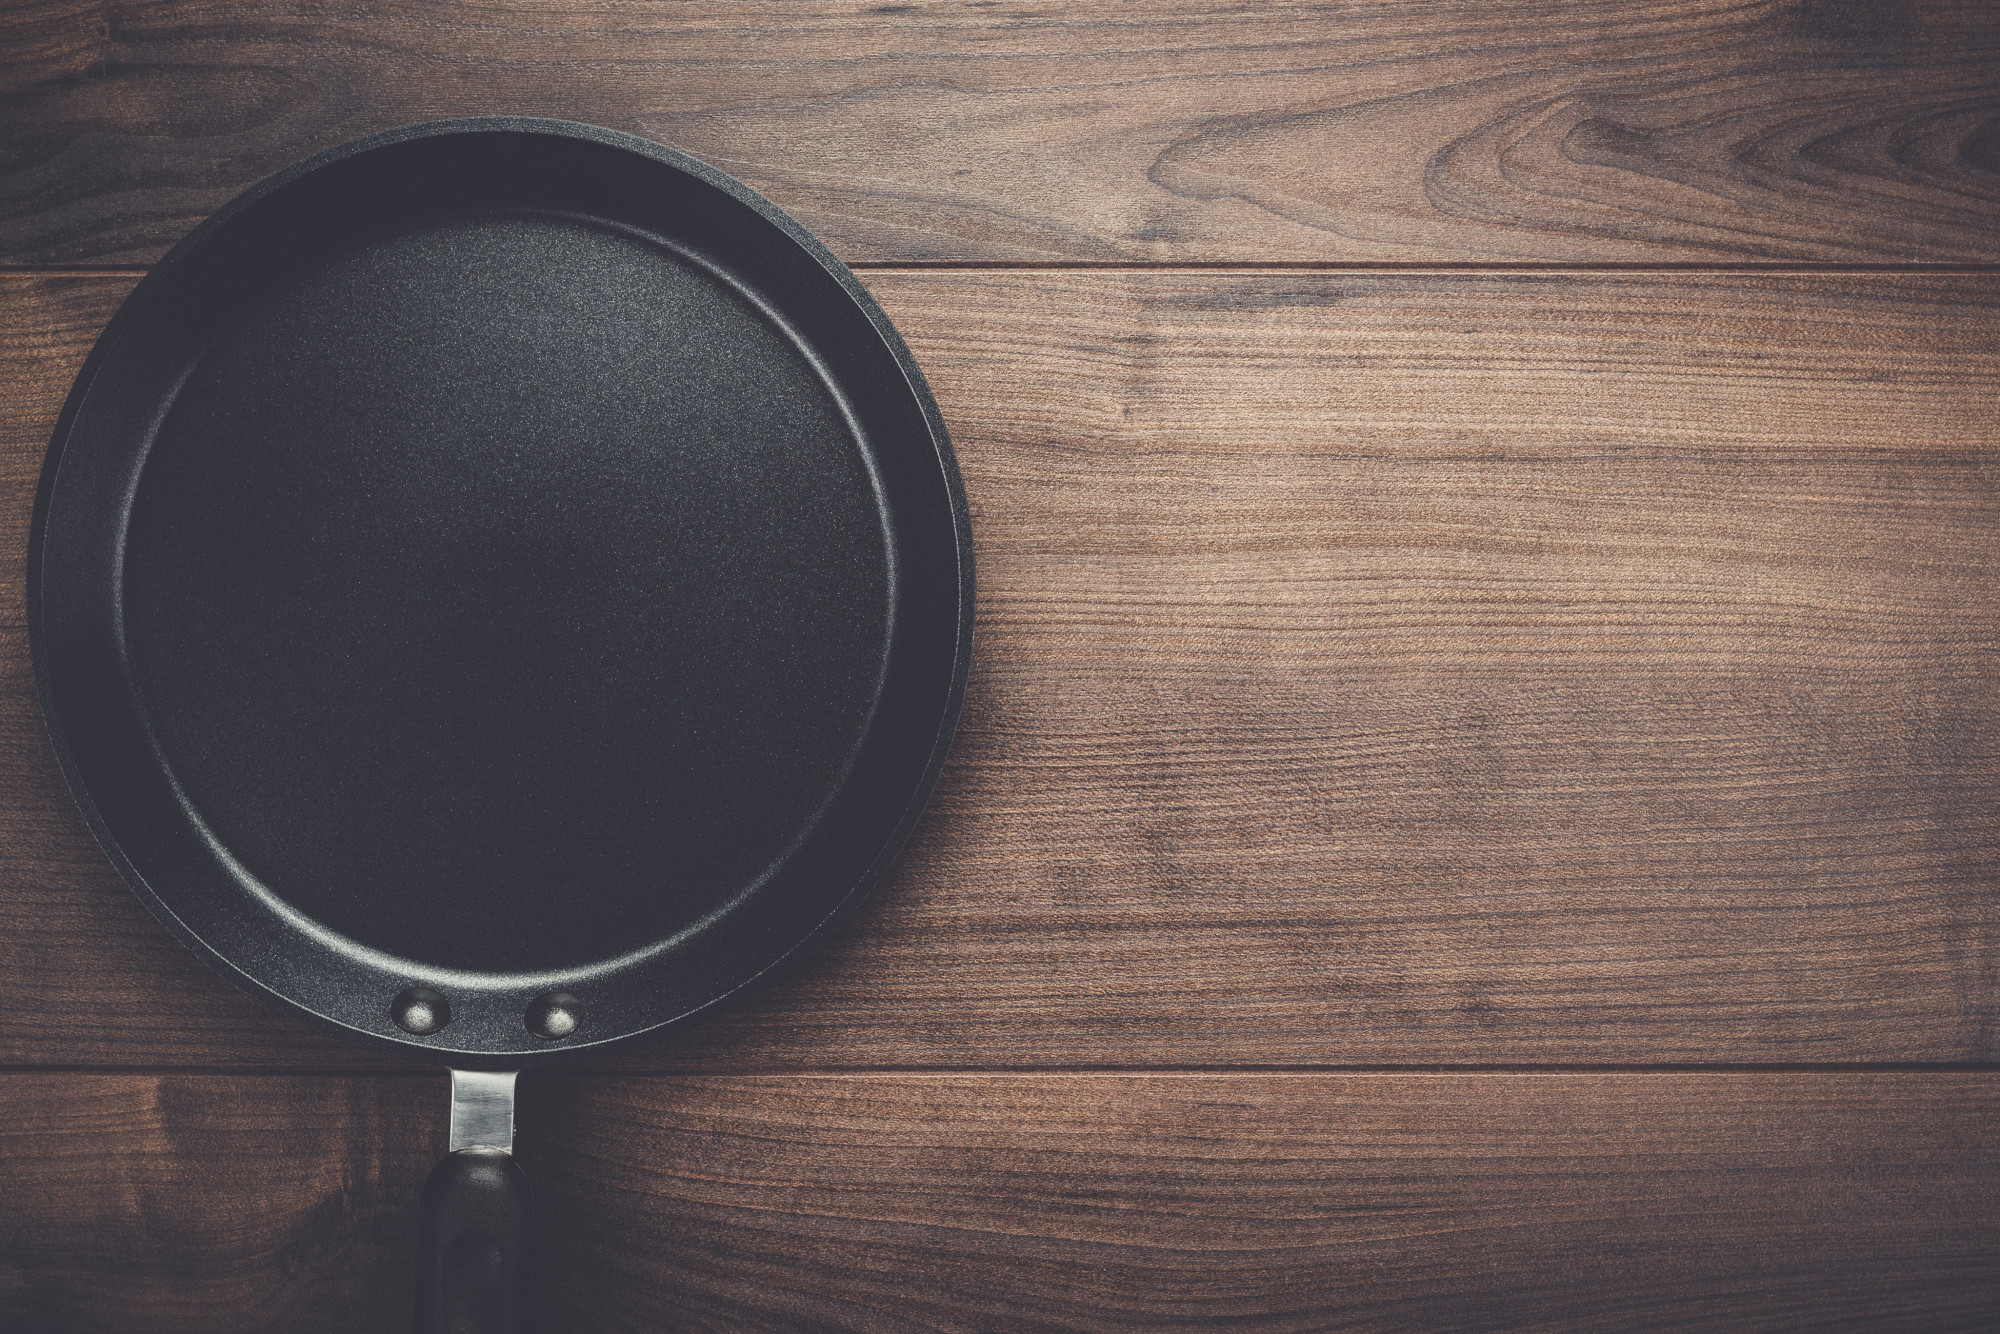 4 Toxic Household Items and the Healthy Alternatives You Can Use Instead